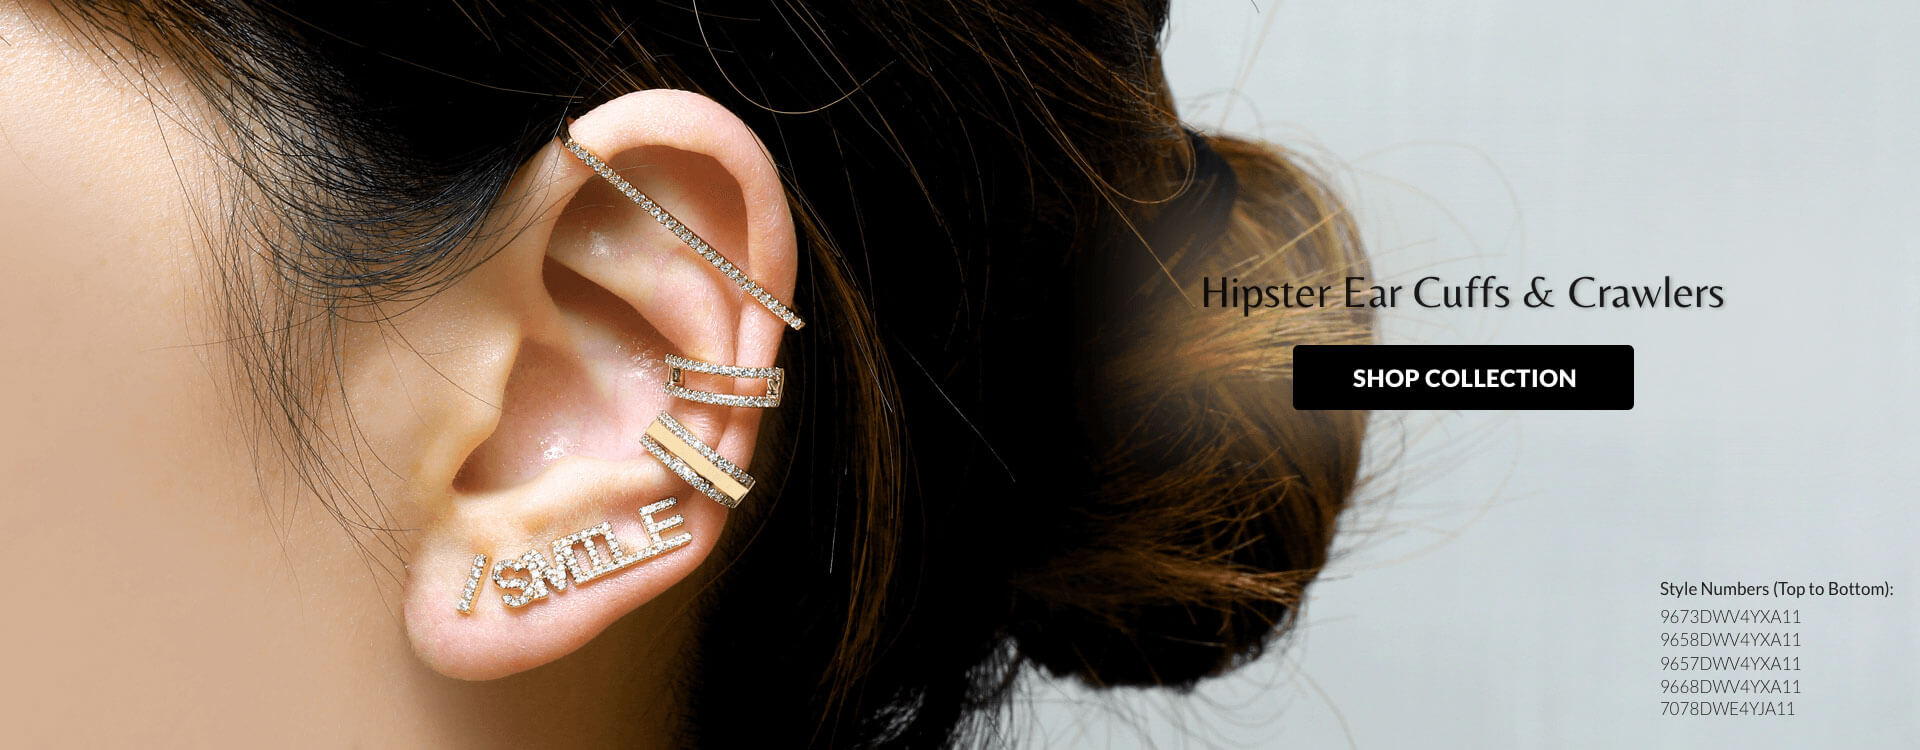 HIpster Ear Cuff & Crawlers